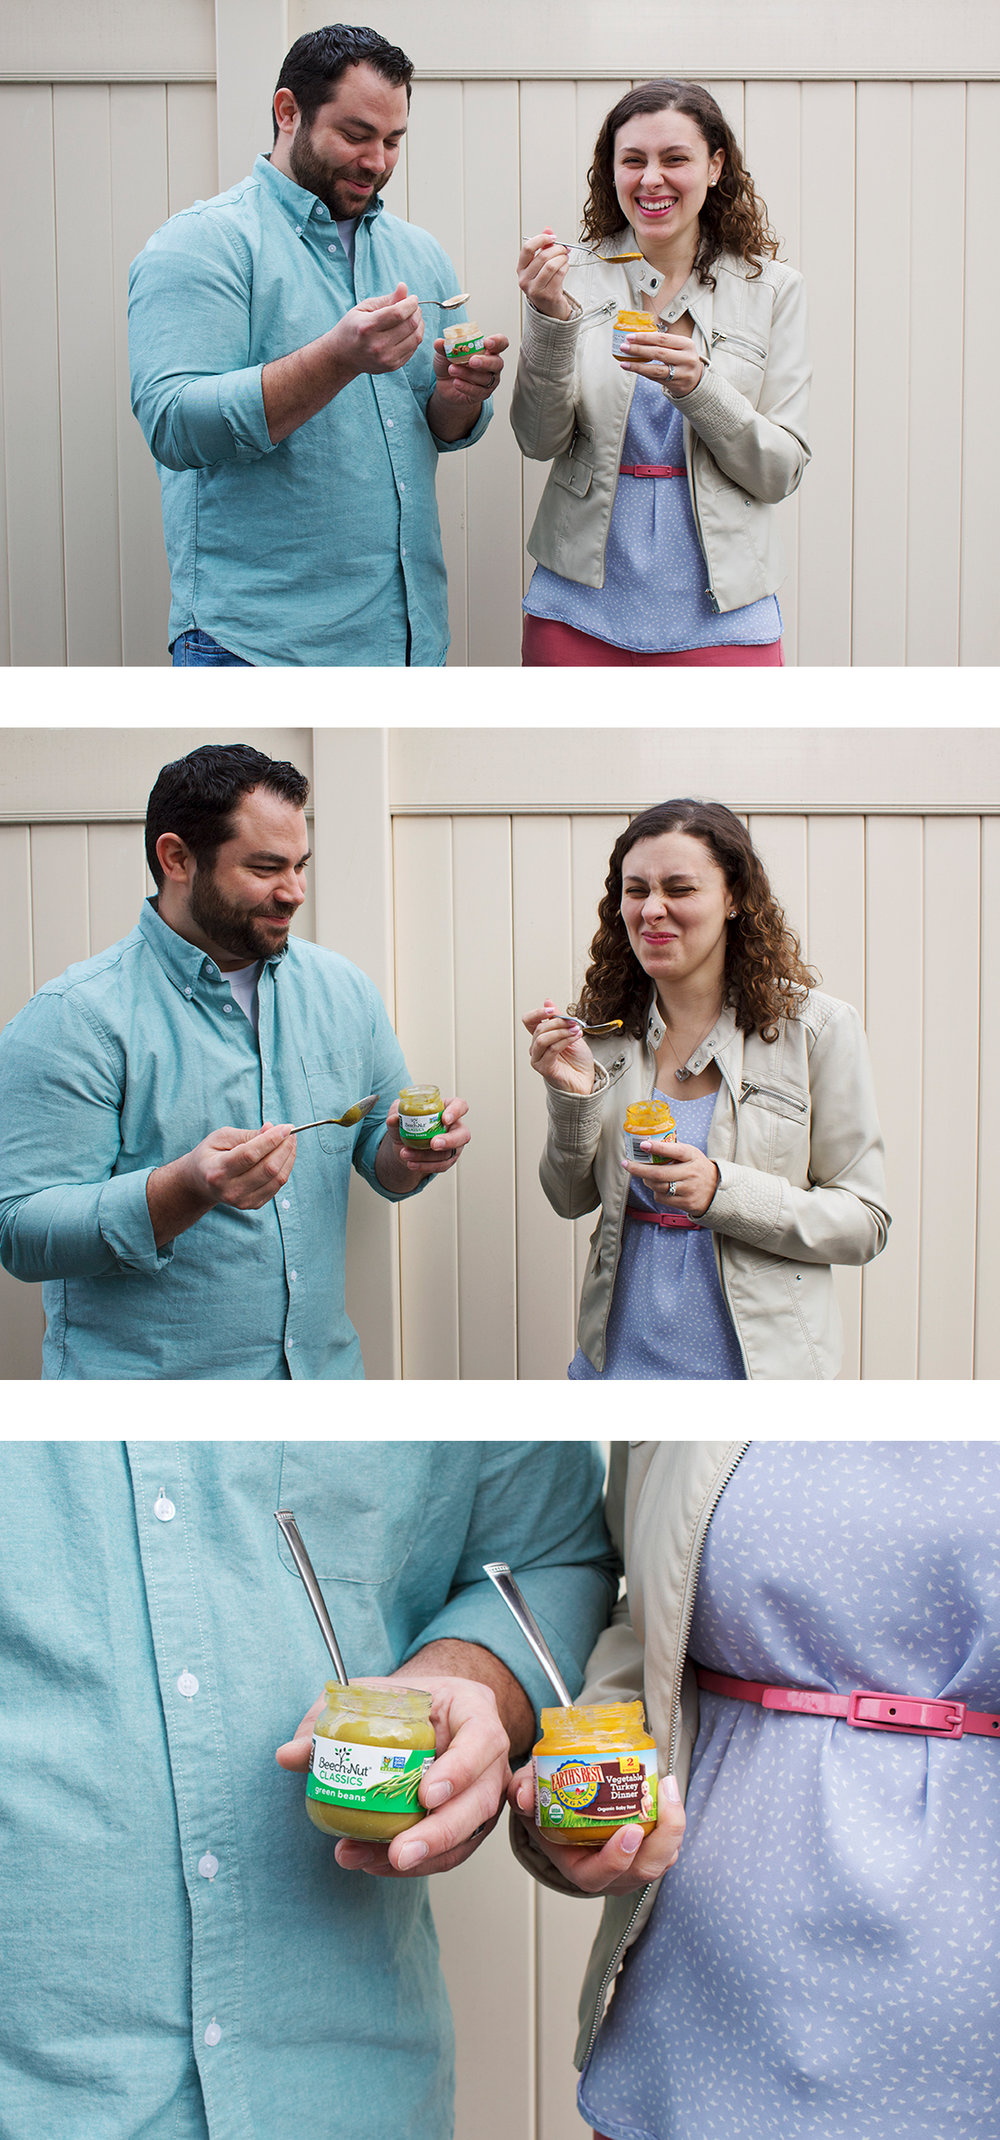 We're having a baby! And we are so stinking excited about it. Read more about our pregnancy announcement and baby food photoshoot by clicking the photo!